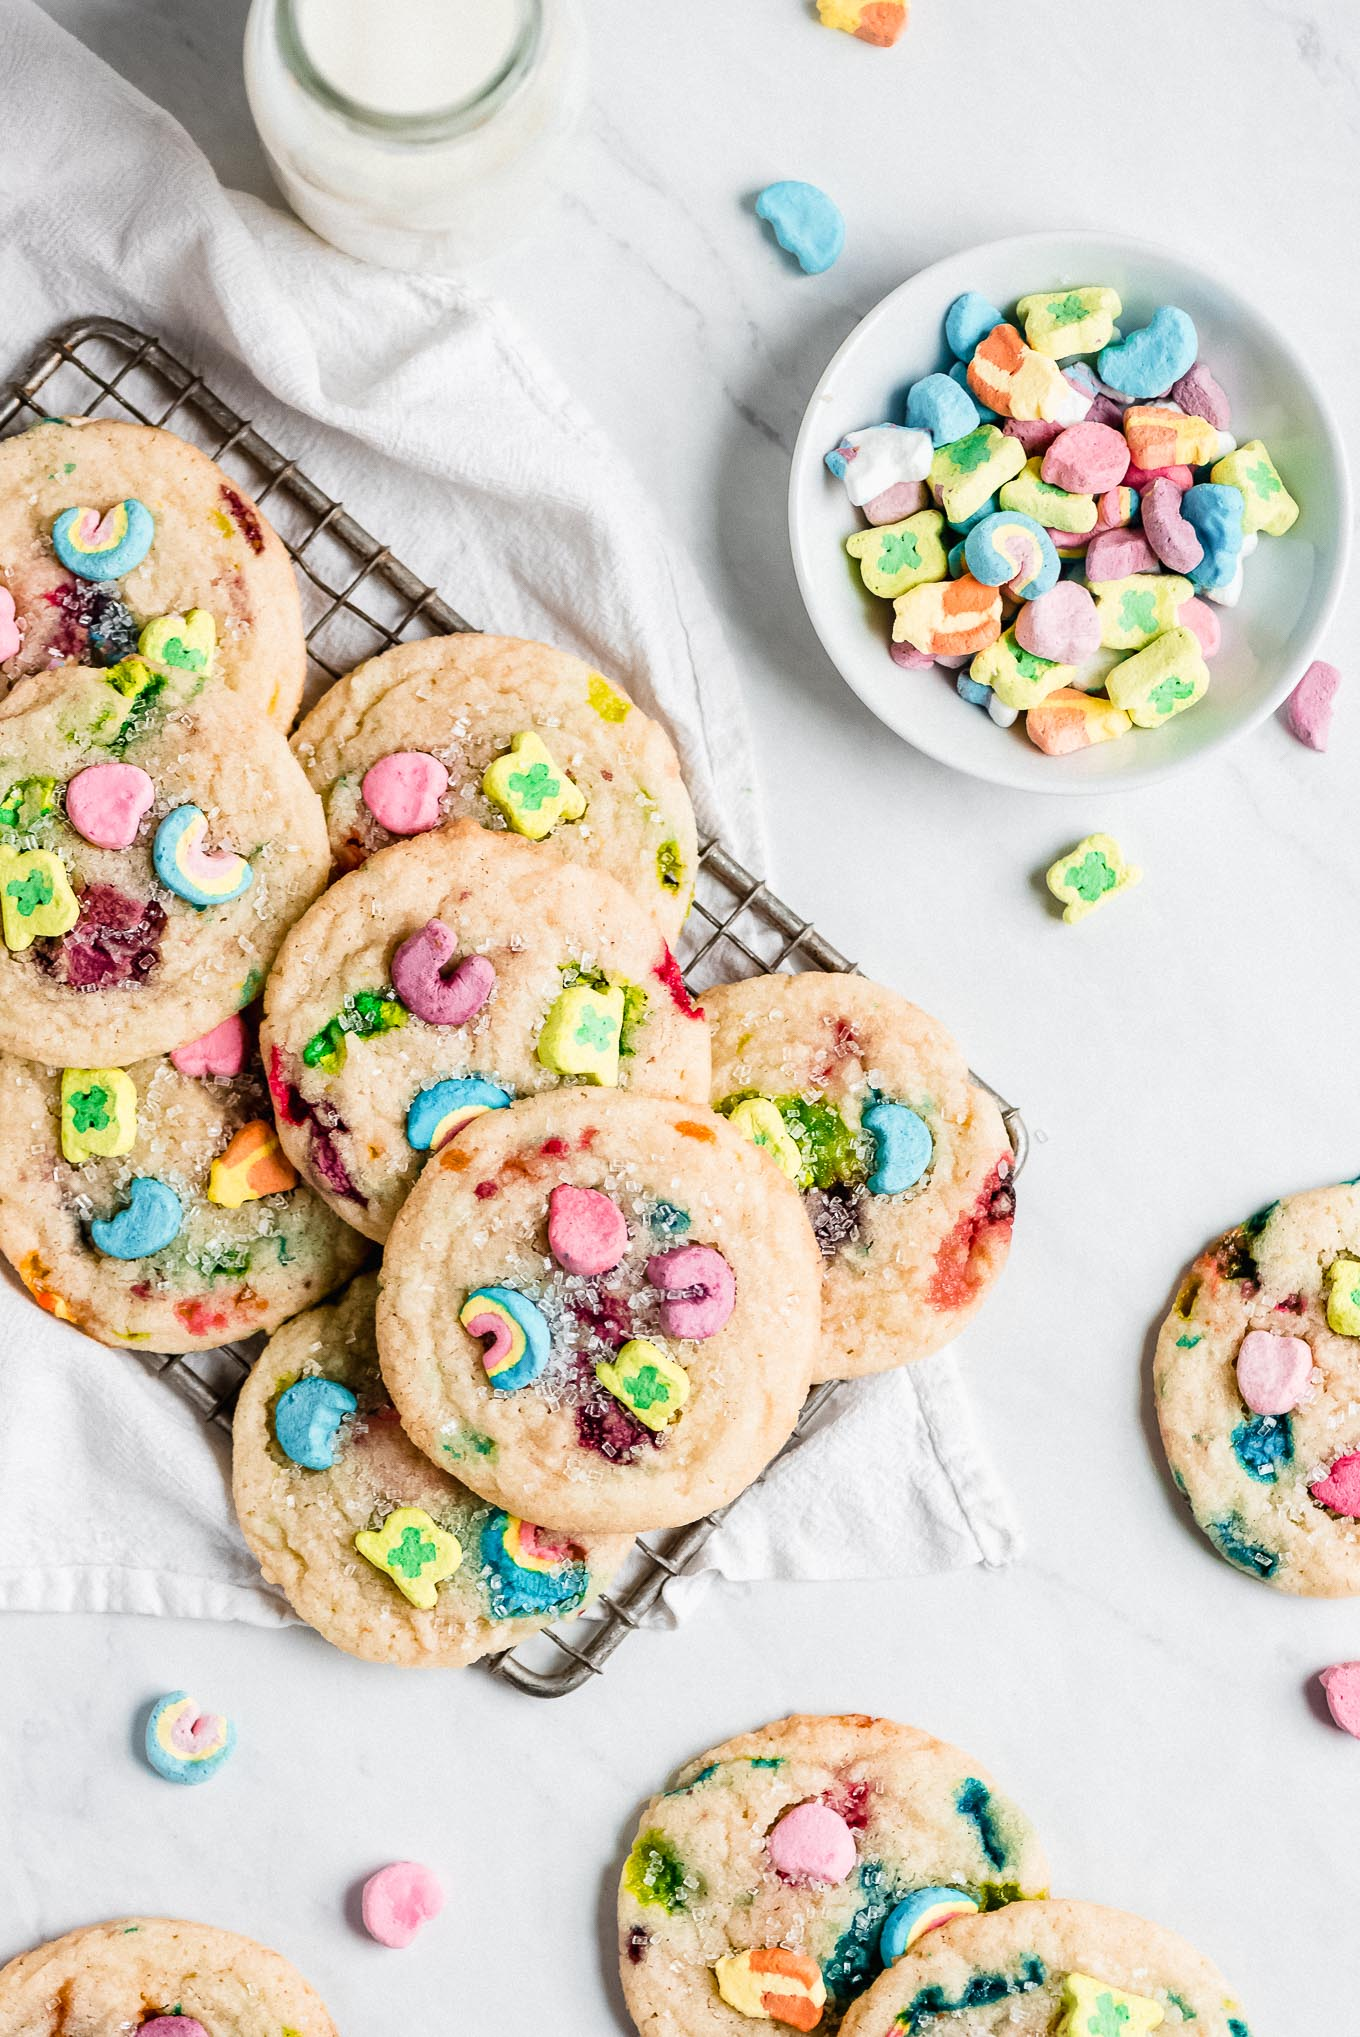 Lucky Charms Cookies on a cooling rack and scattered on surface. A small bowl of colorful marshmallows and a jar of milk.